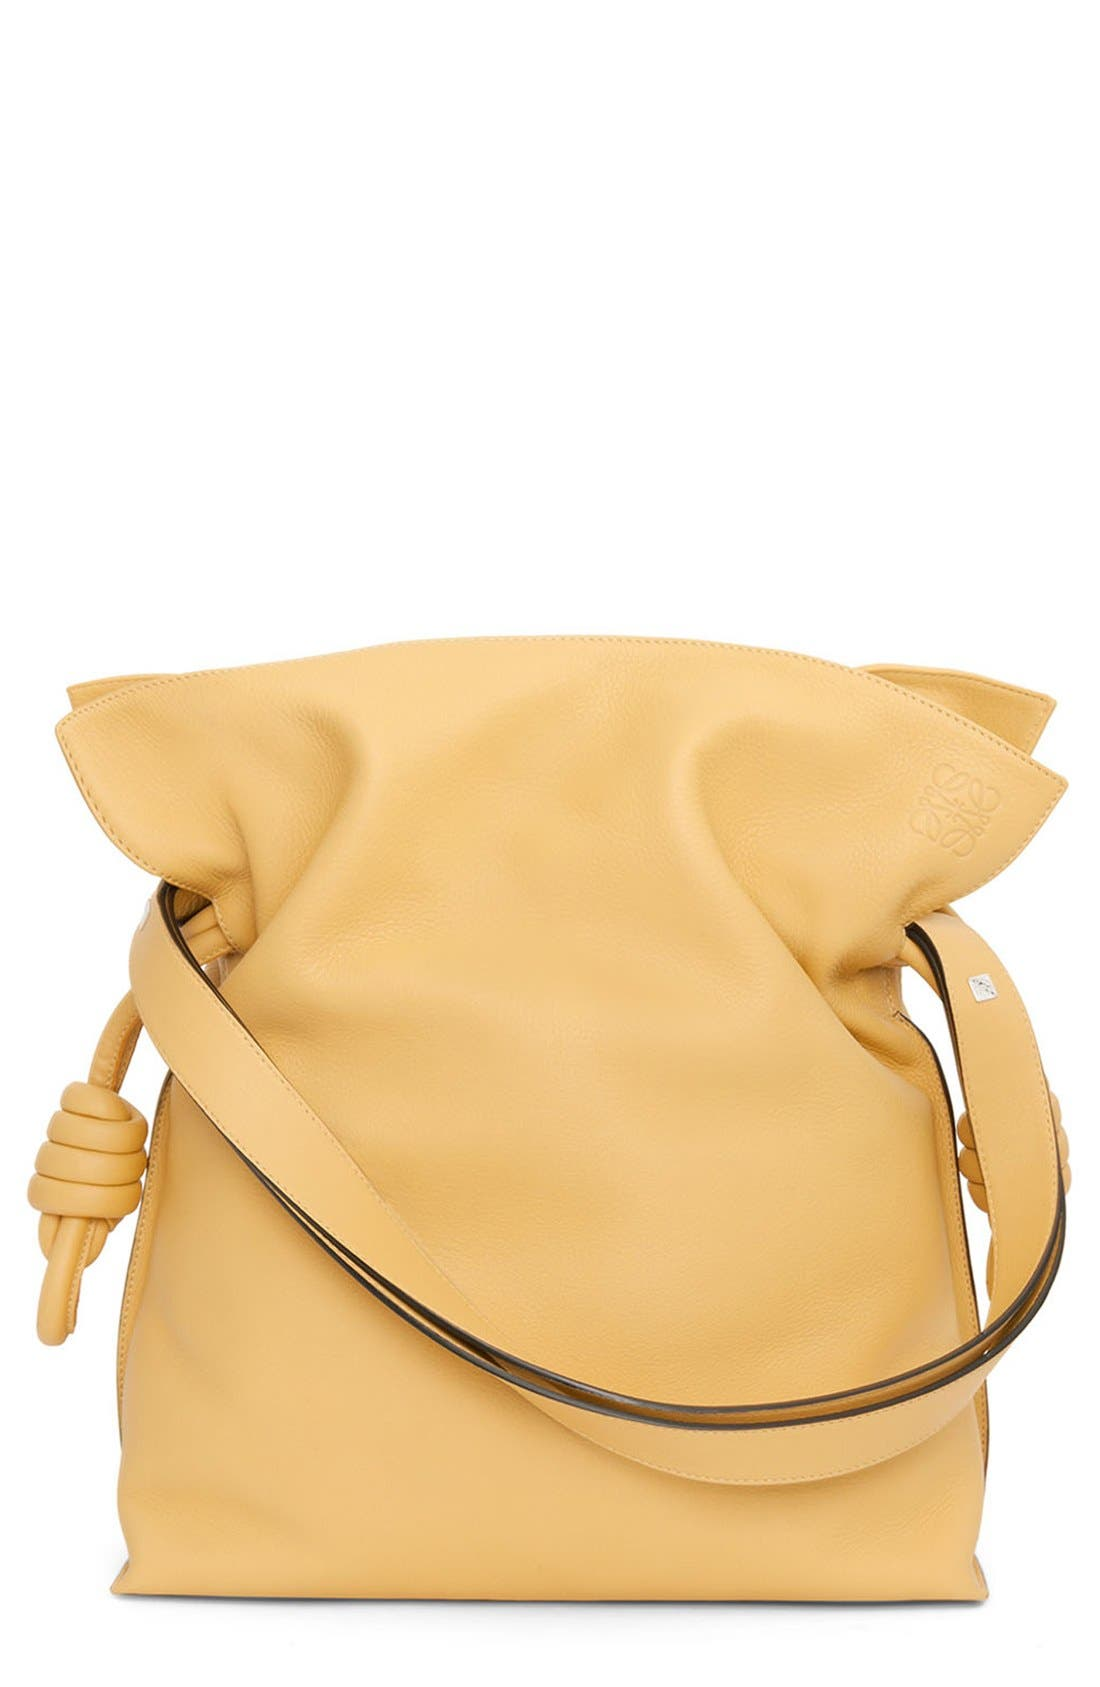 Main Image - Loewe 'Flamenco Knot' Calfskin Leather Bag